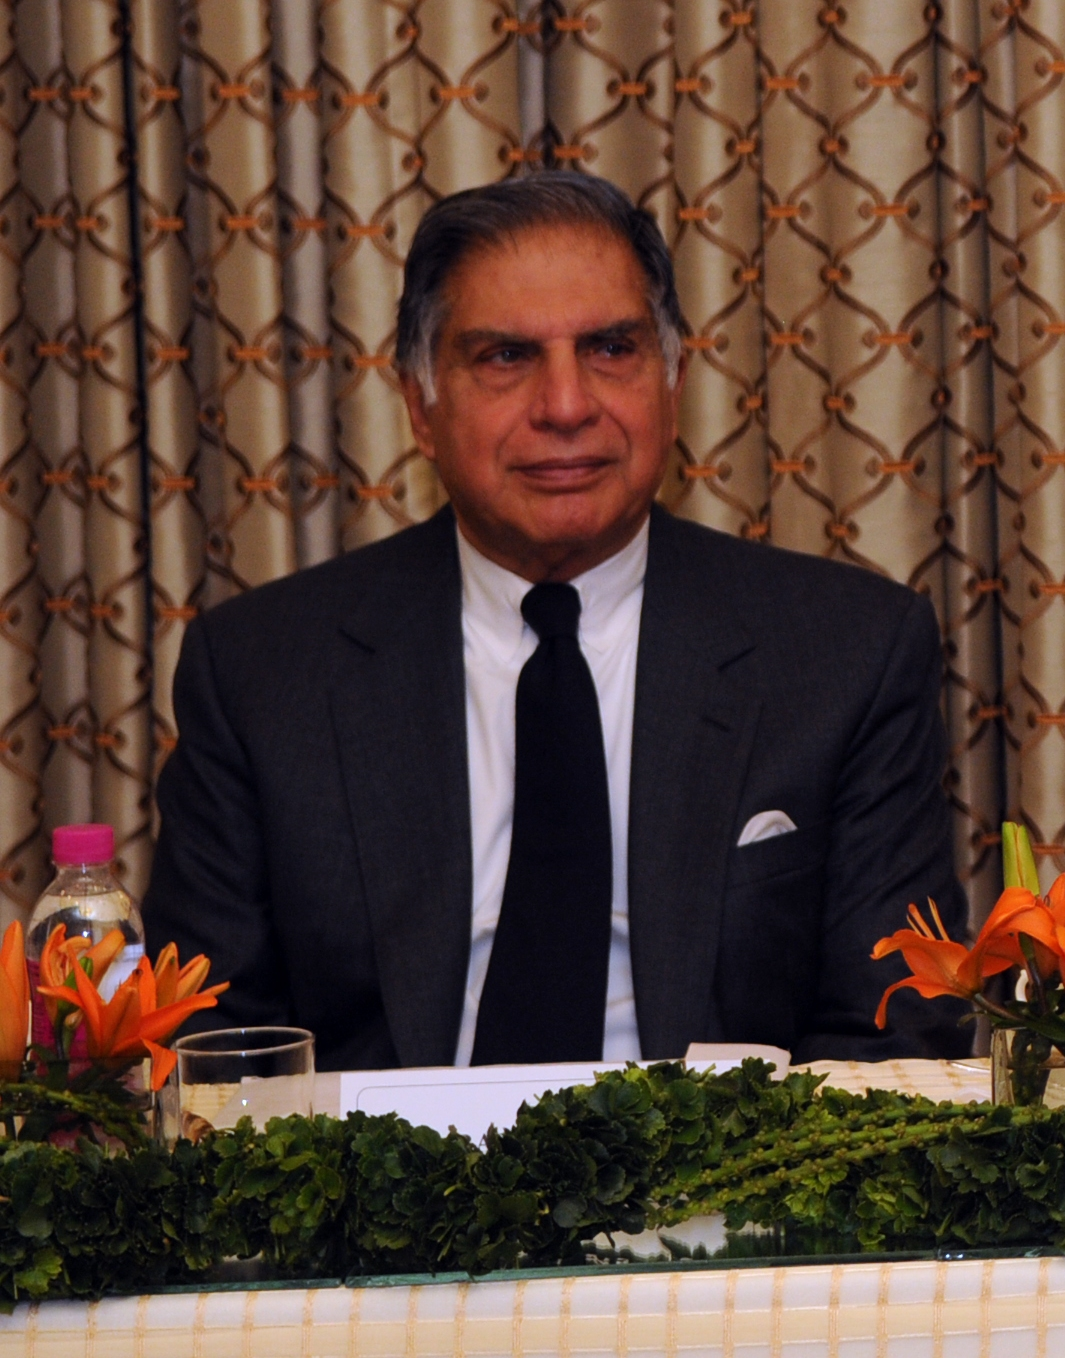 Of all the accusations Cyrus Mistry levelled against Ratan Tata, the one regarding AirAsia had the most dramatic repercussions